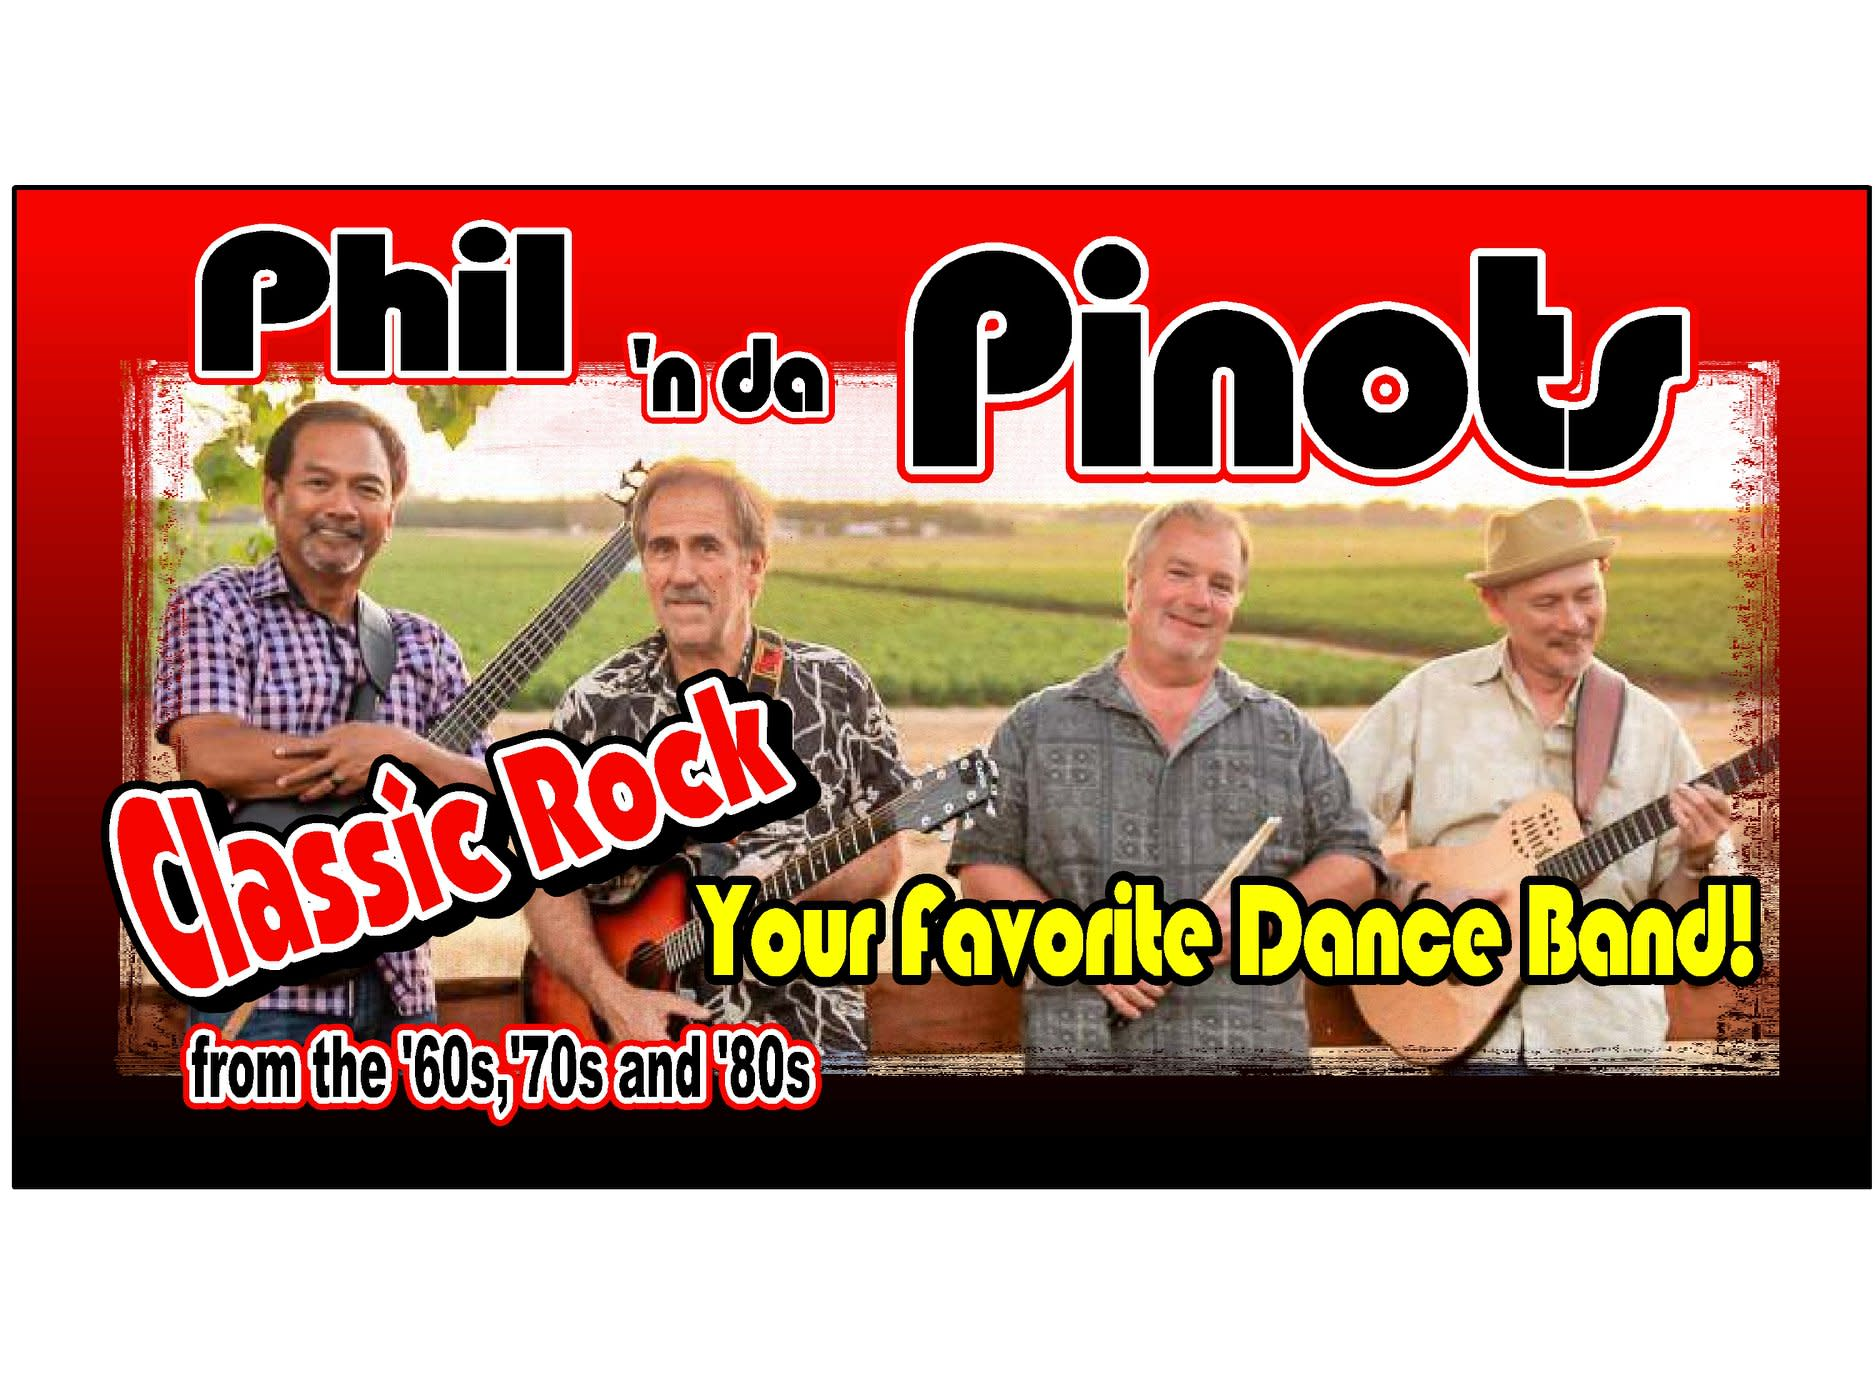 """Phil 'n da Pinots - Classic Rock from the 60's, 70's & 80's """"Your favorite Dance Band! flyer with a photo of the band"""